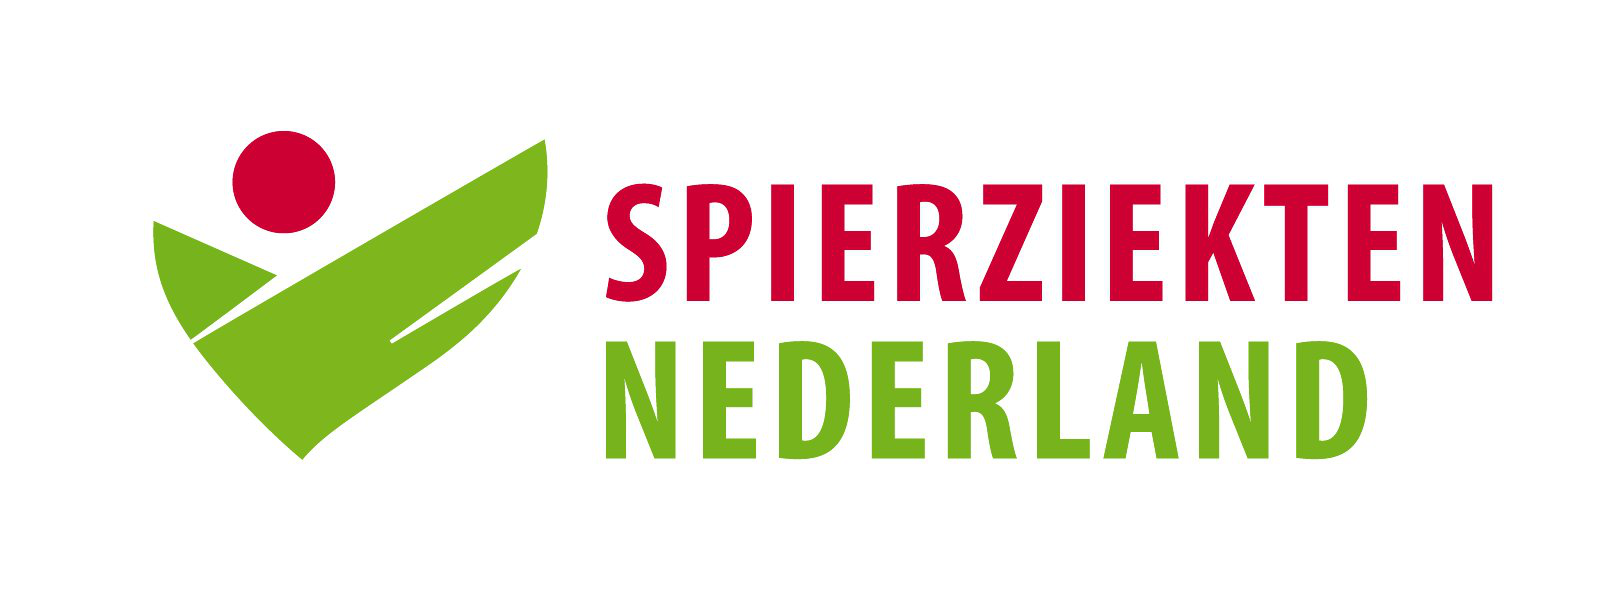 Vereniging Spierziekten Nederland (The Netherlands)